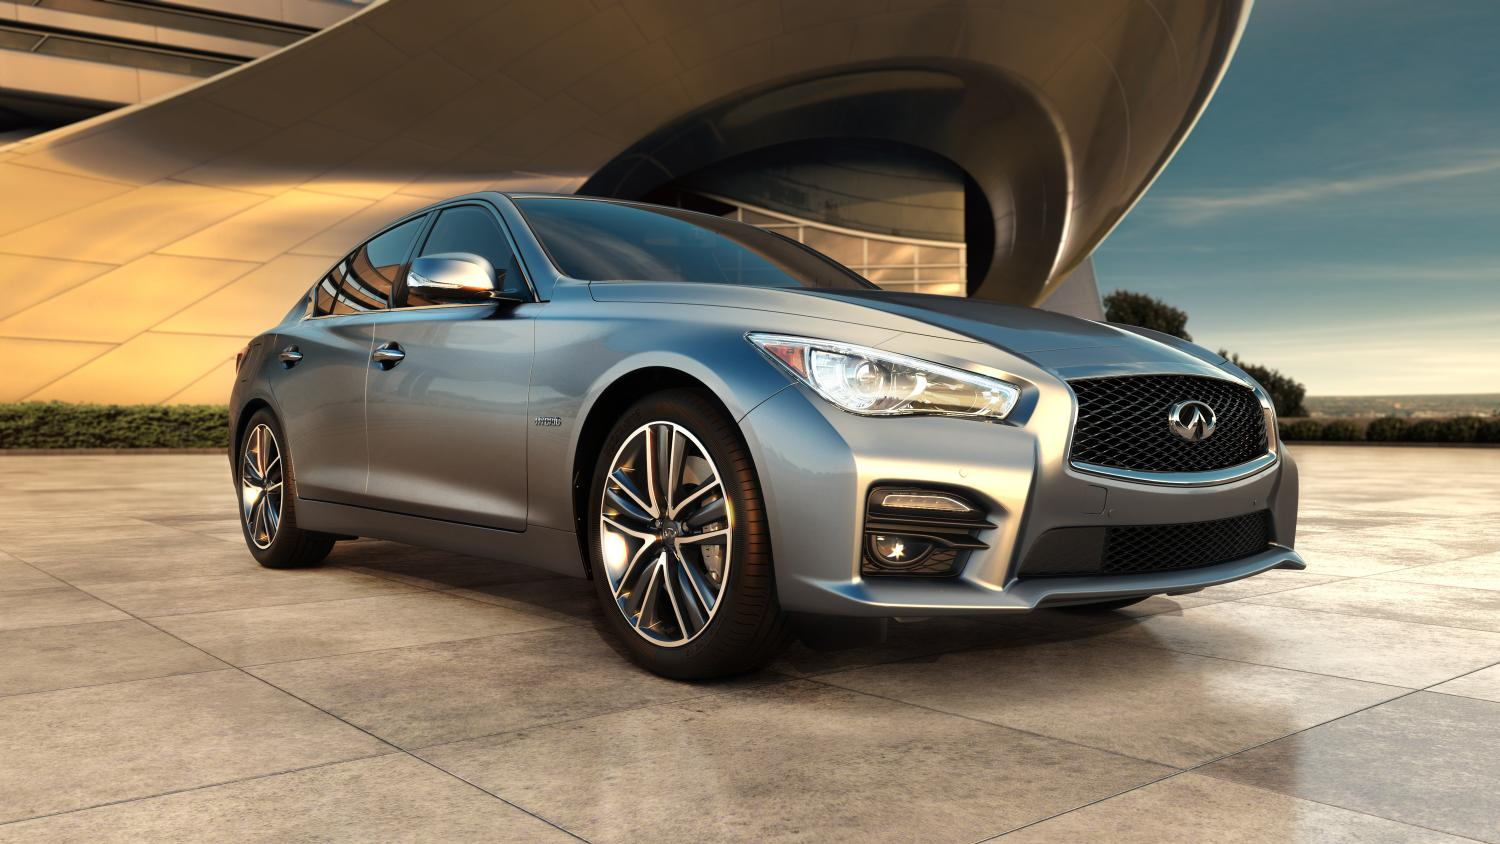 2014 infiniti q50 sedan featuring three world 39 s first technologies priced from 36 700 48 150. Black Bedroom Furniture Sets. Home Design Ideas